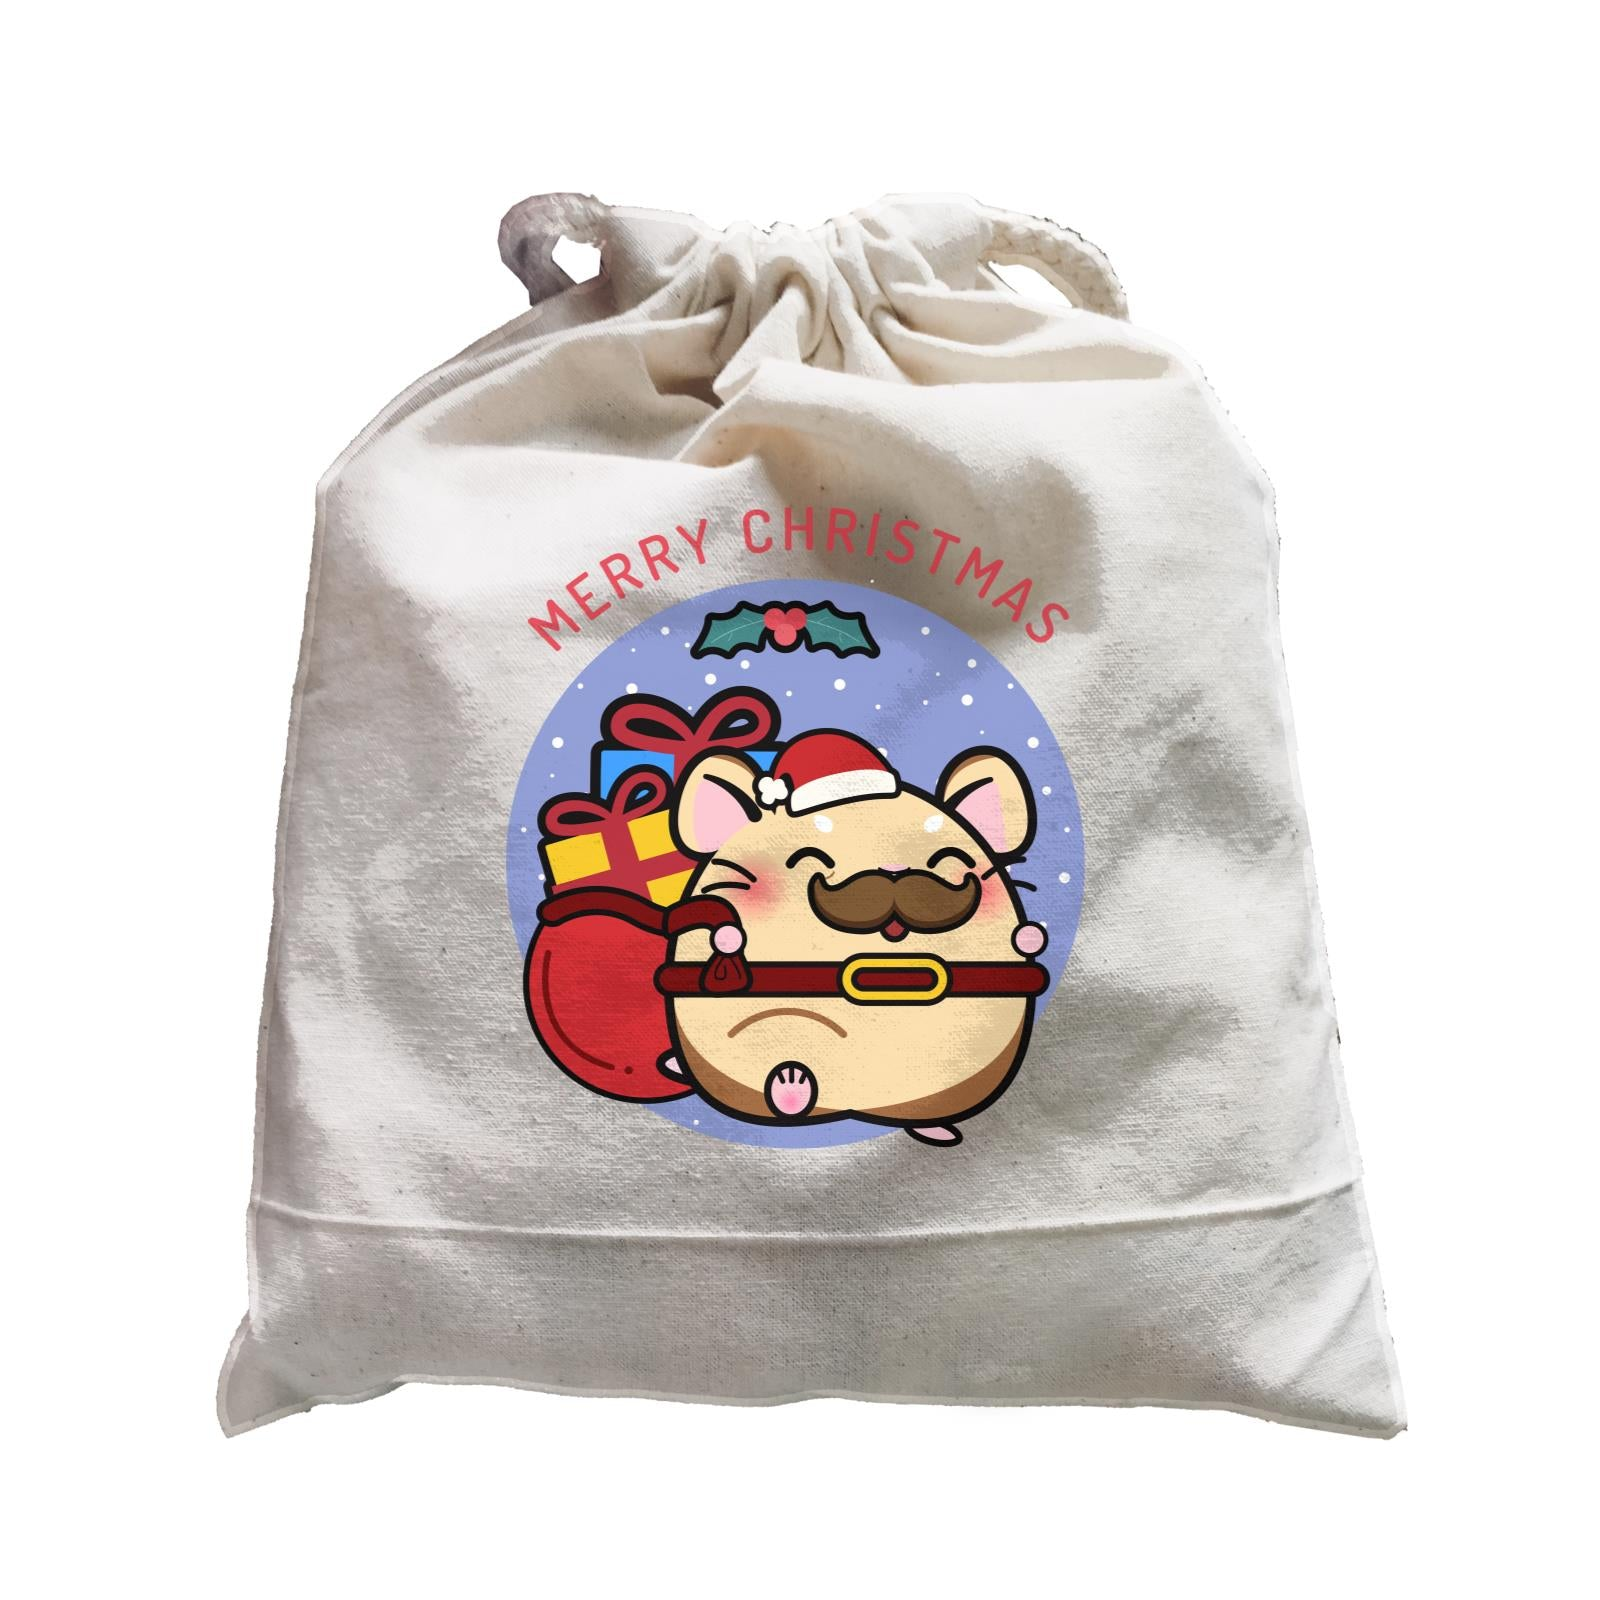 Merry Christmas Cute Santa Father Hamster Satchel